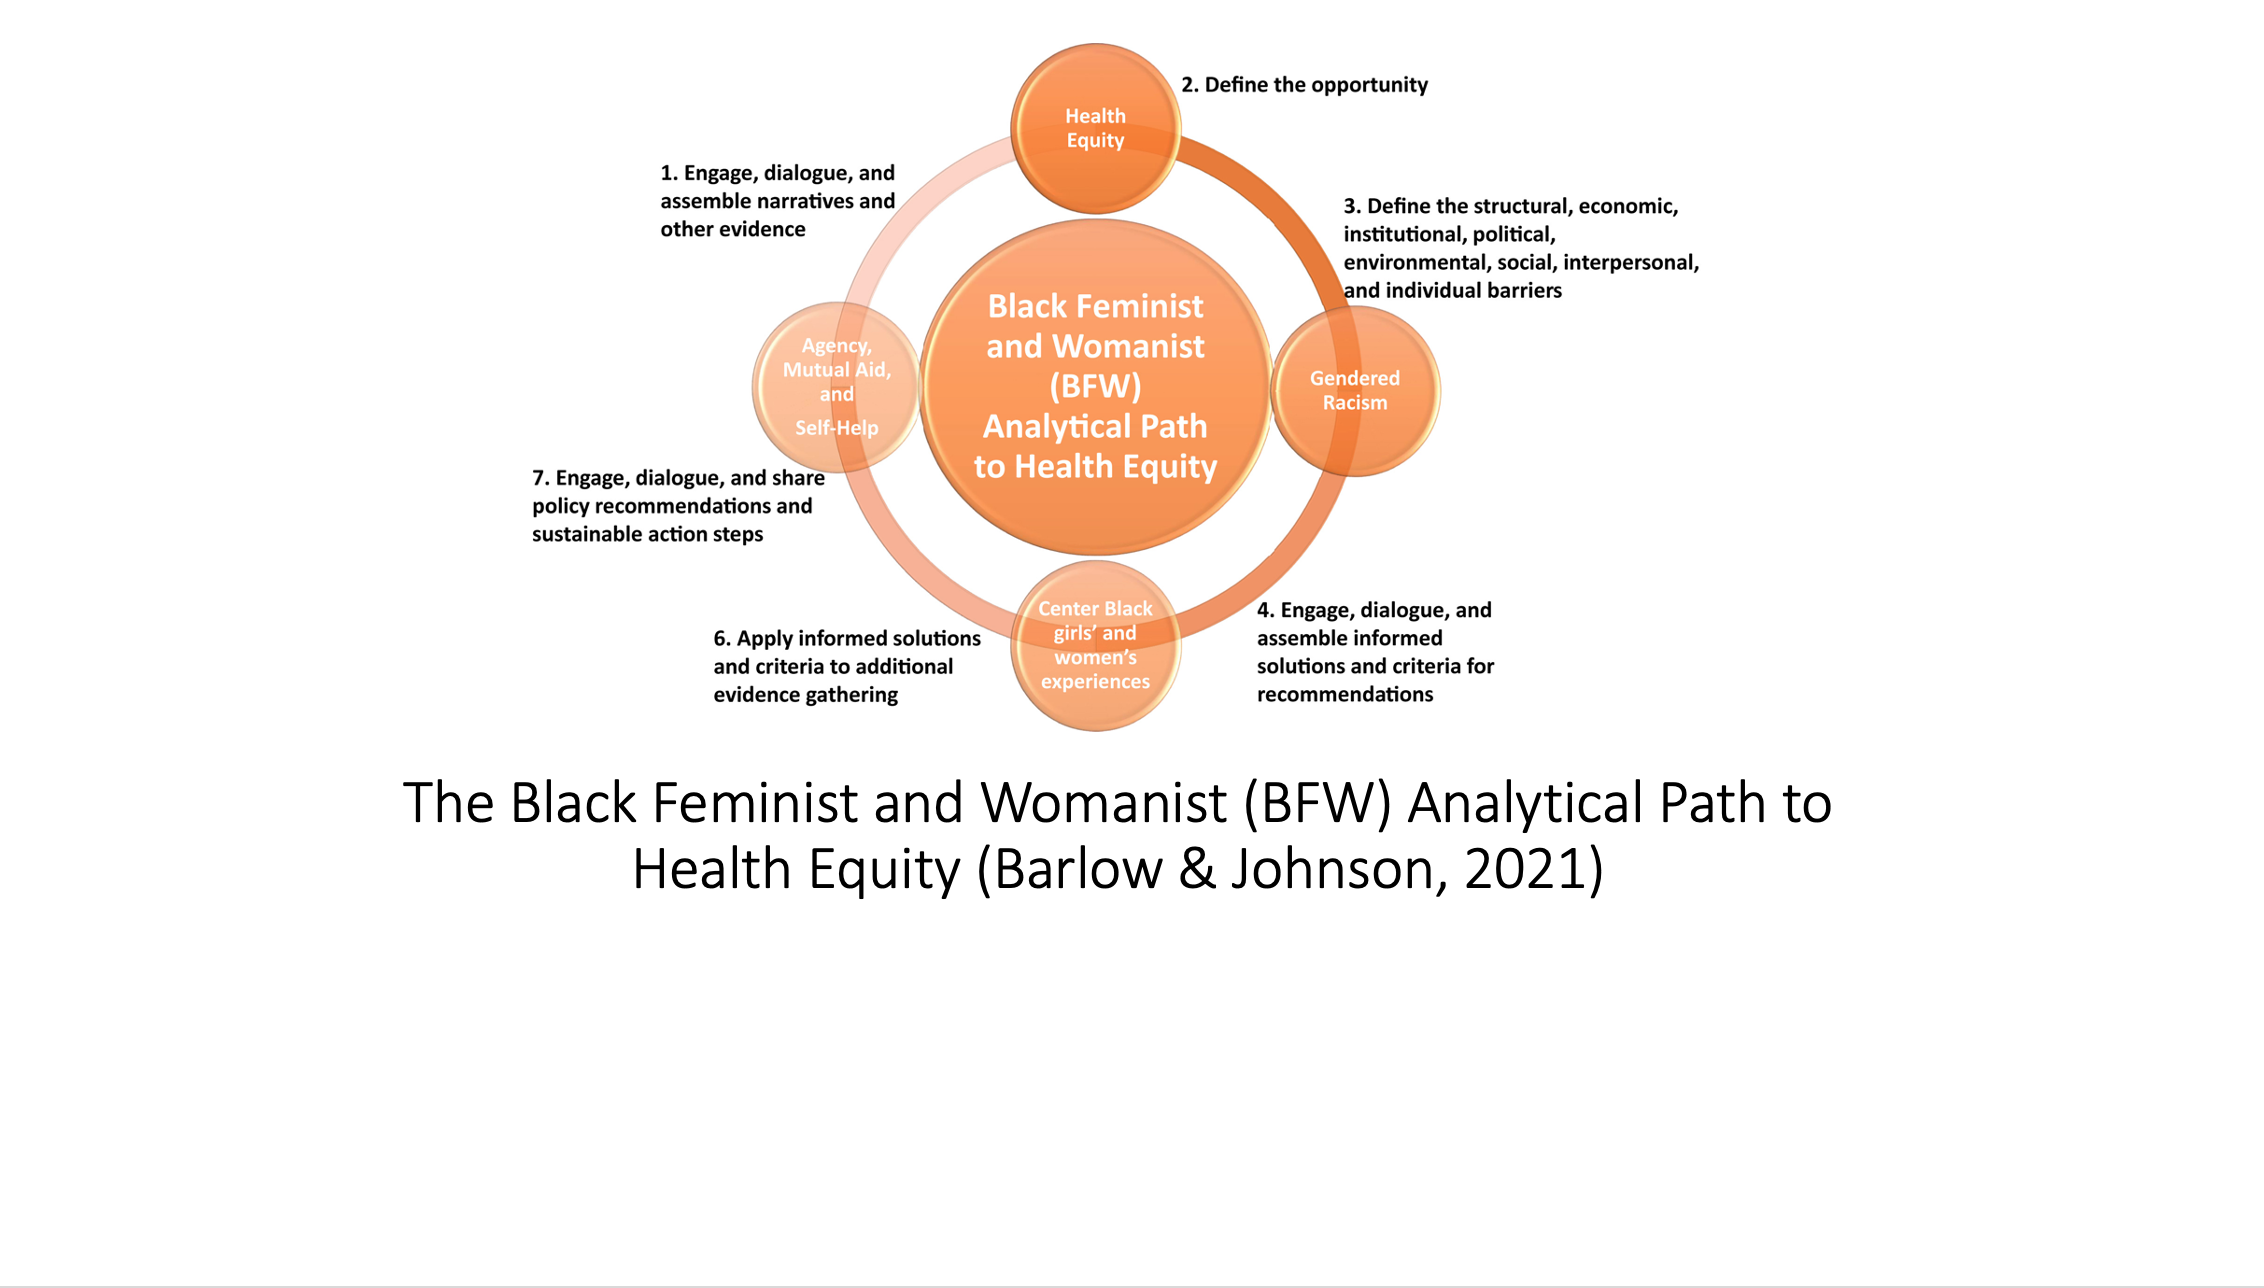 Schematic of The Black Feminist and Womanist Analytical Path to Health Equity